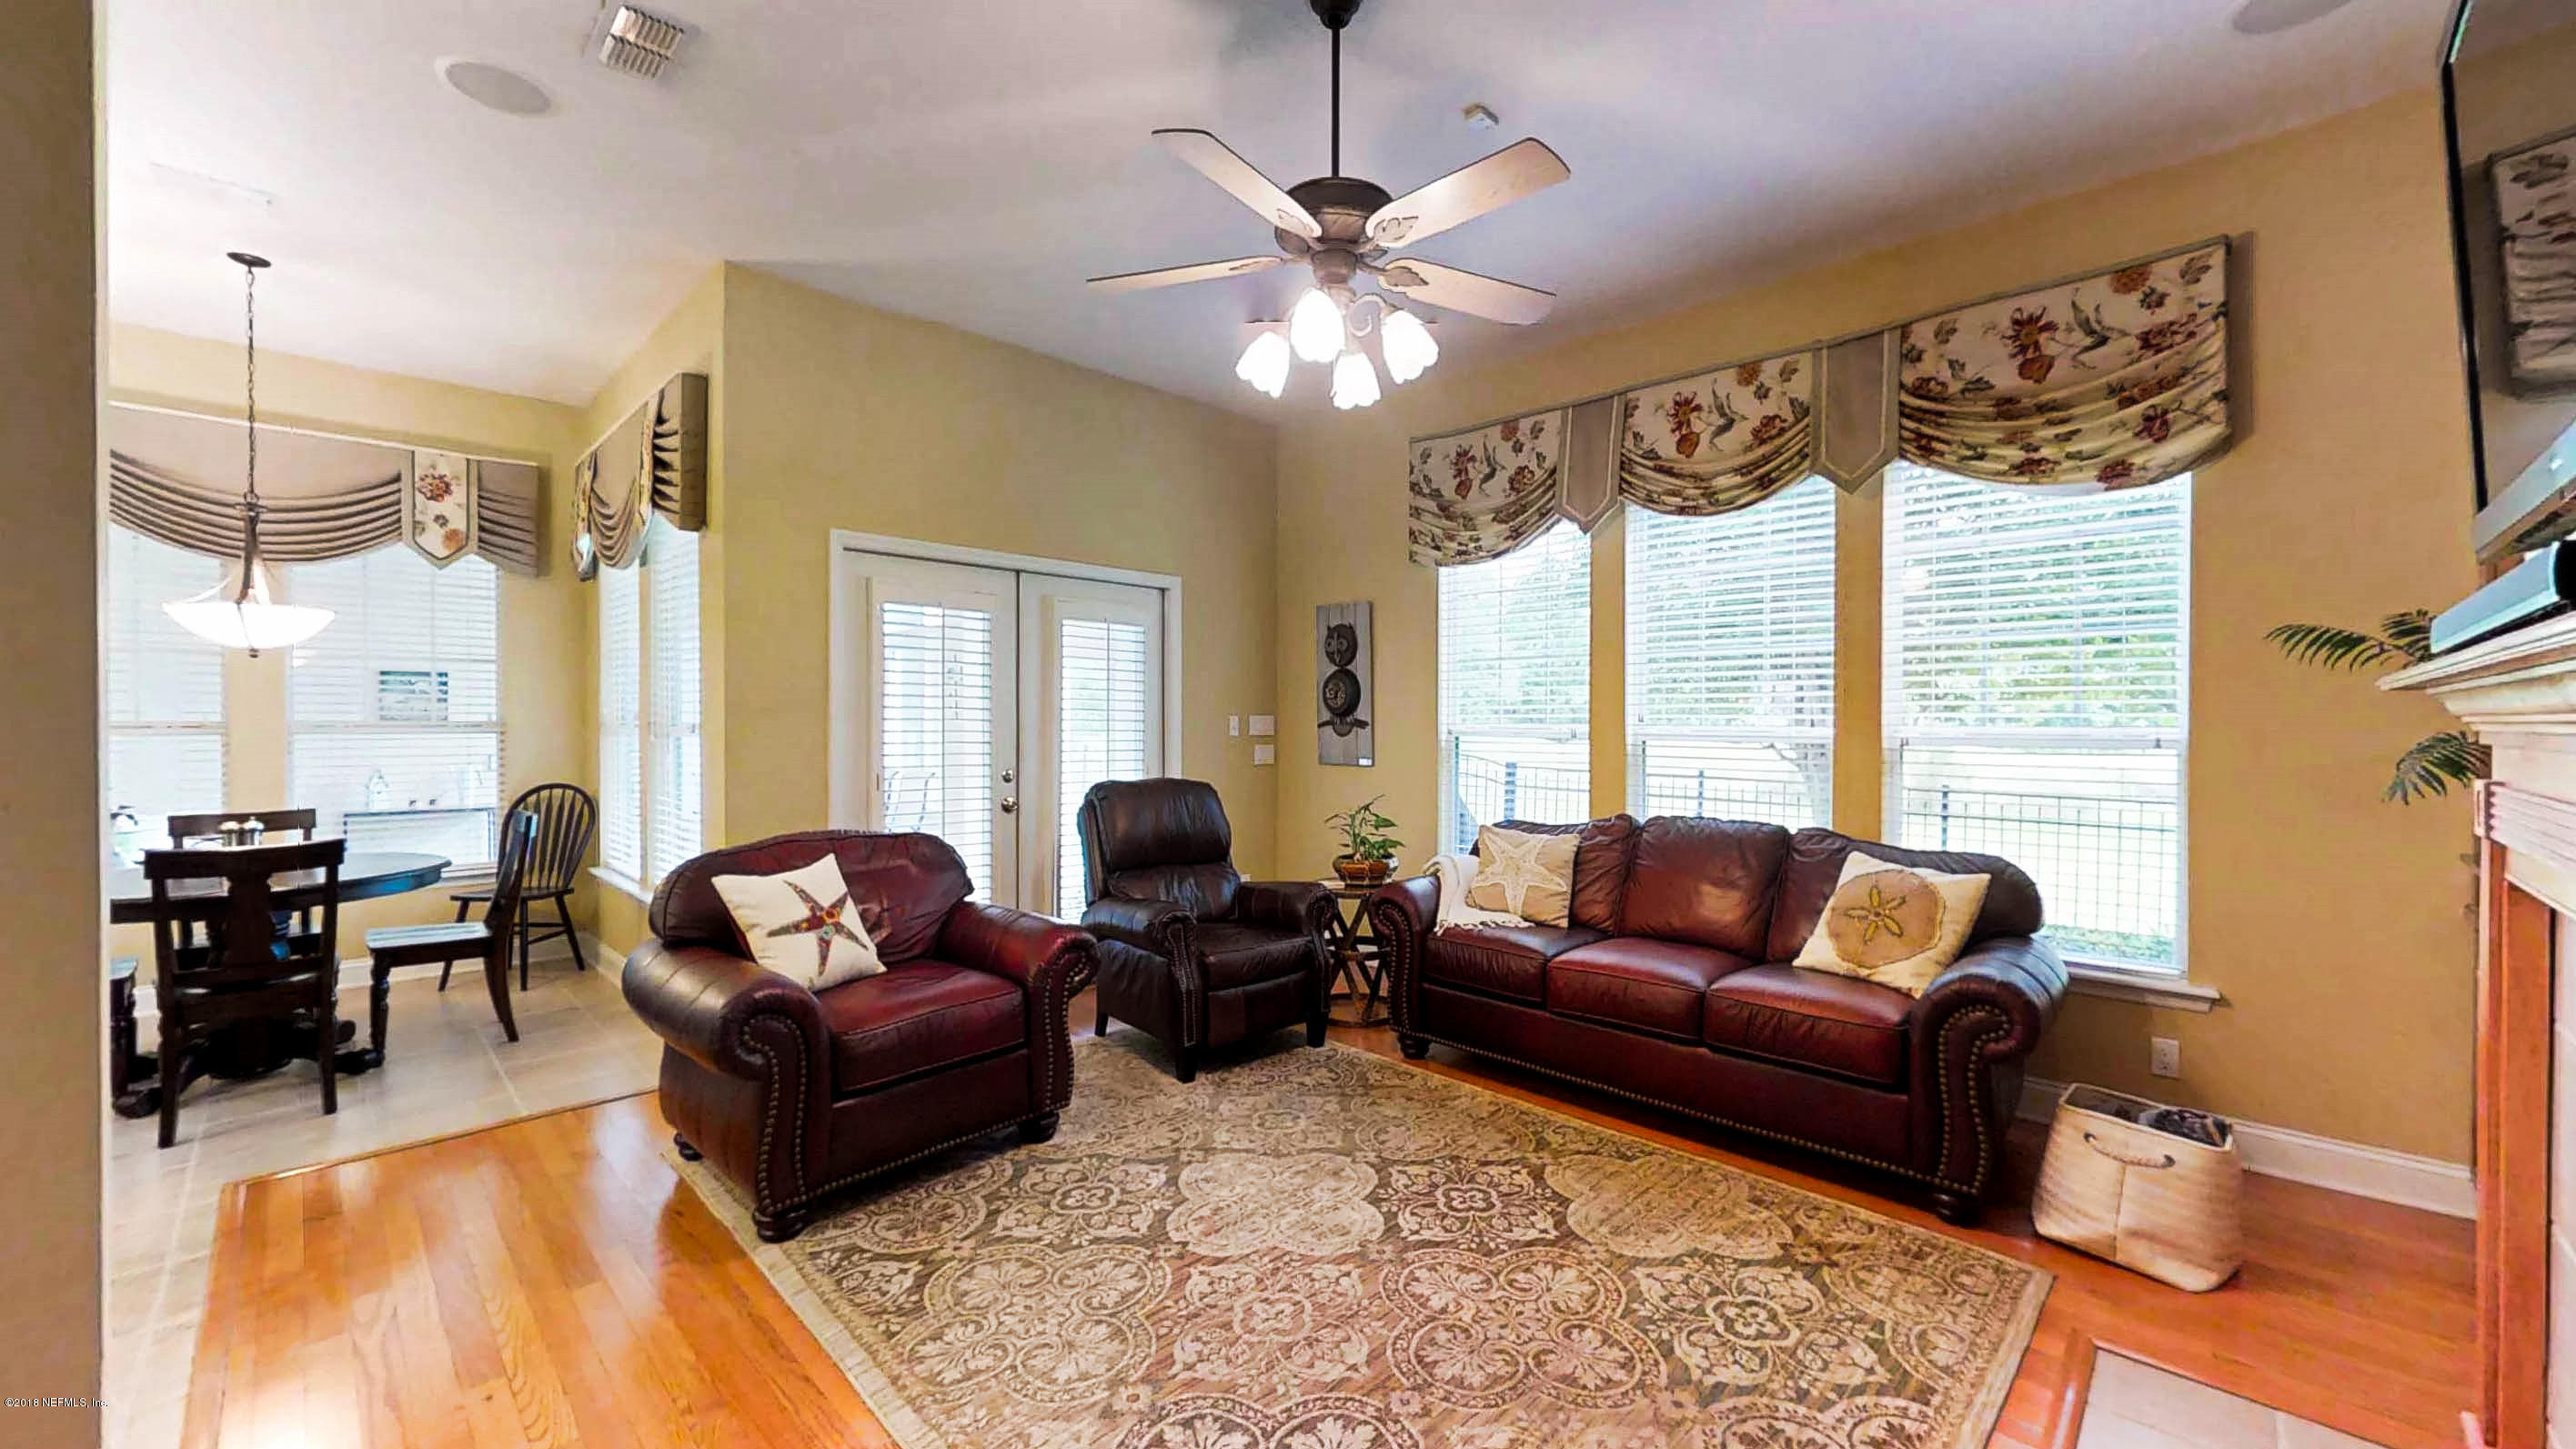 821 EAGLE POINT, ST AUGUSTINE, FLORIDA 32092, 4 Bedrooms Bedrooms, ,3 BathroomsBathrooms,Residential - single family,For sale,EAGLE POINT,937171